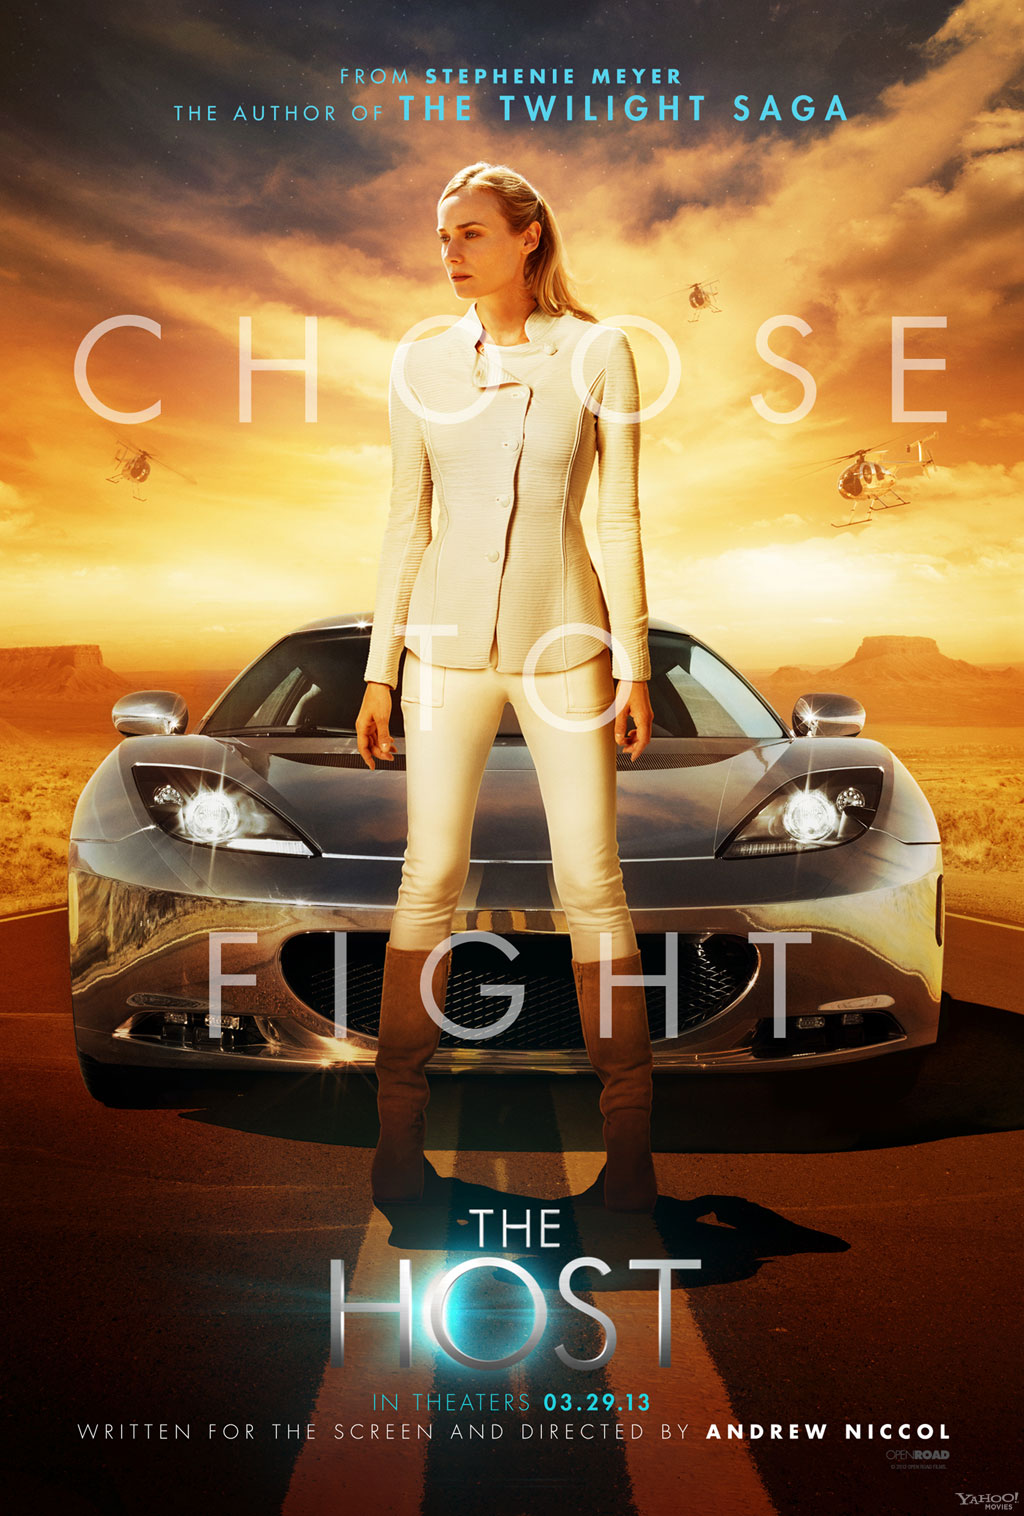 The Host poster - Andrew Niccol featuring Diane Kruger